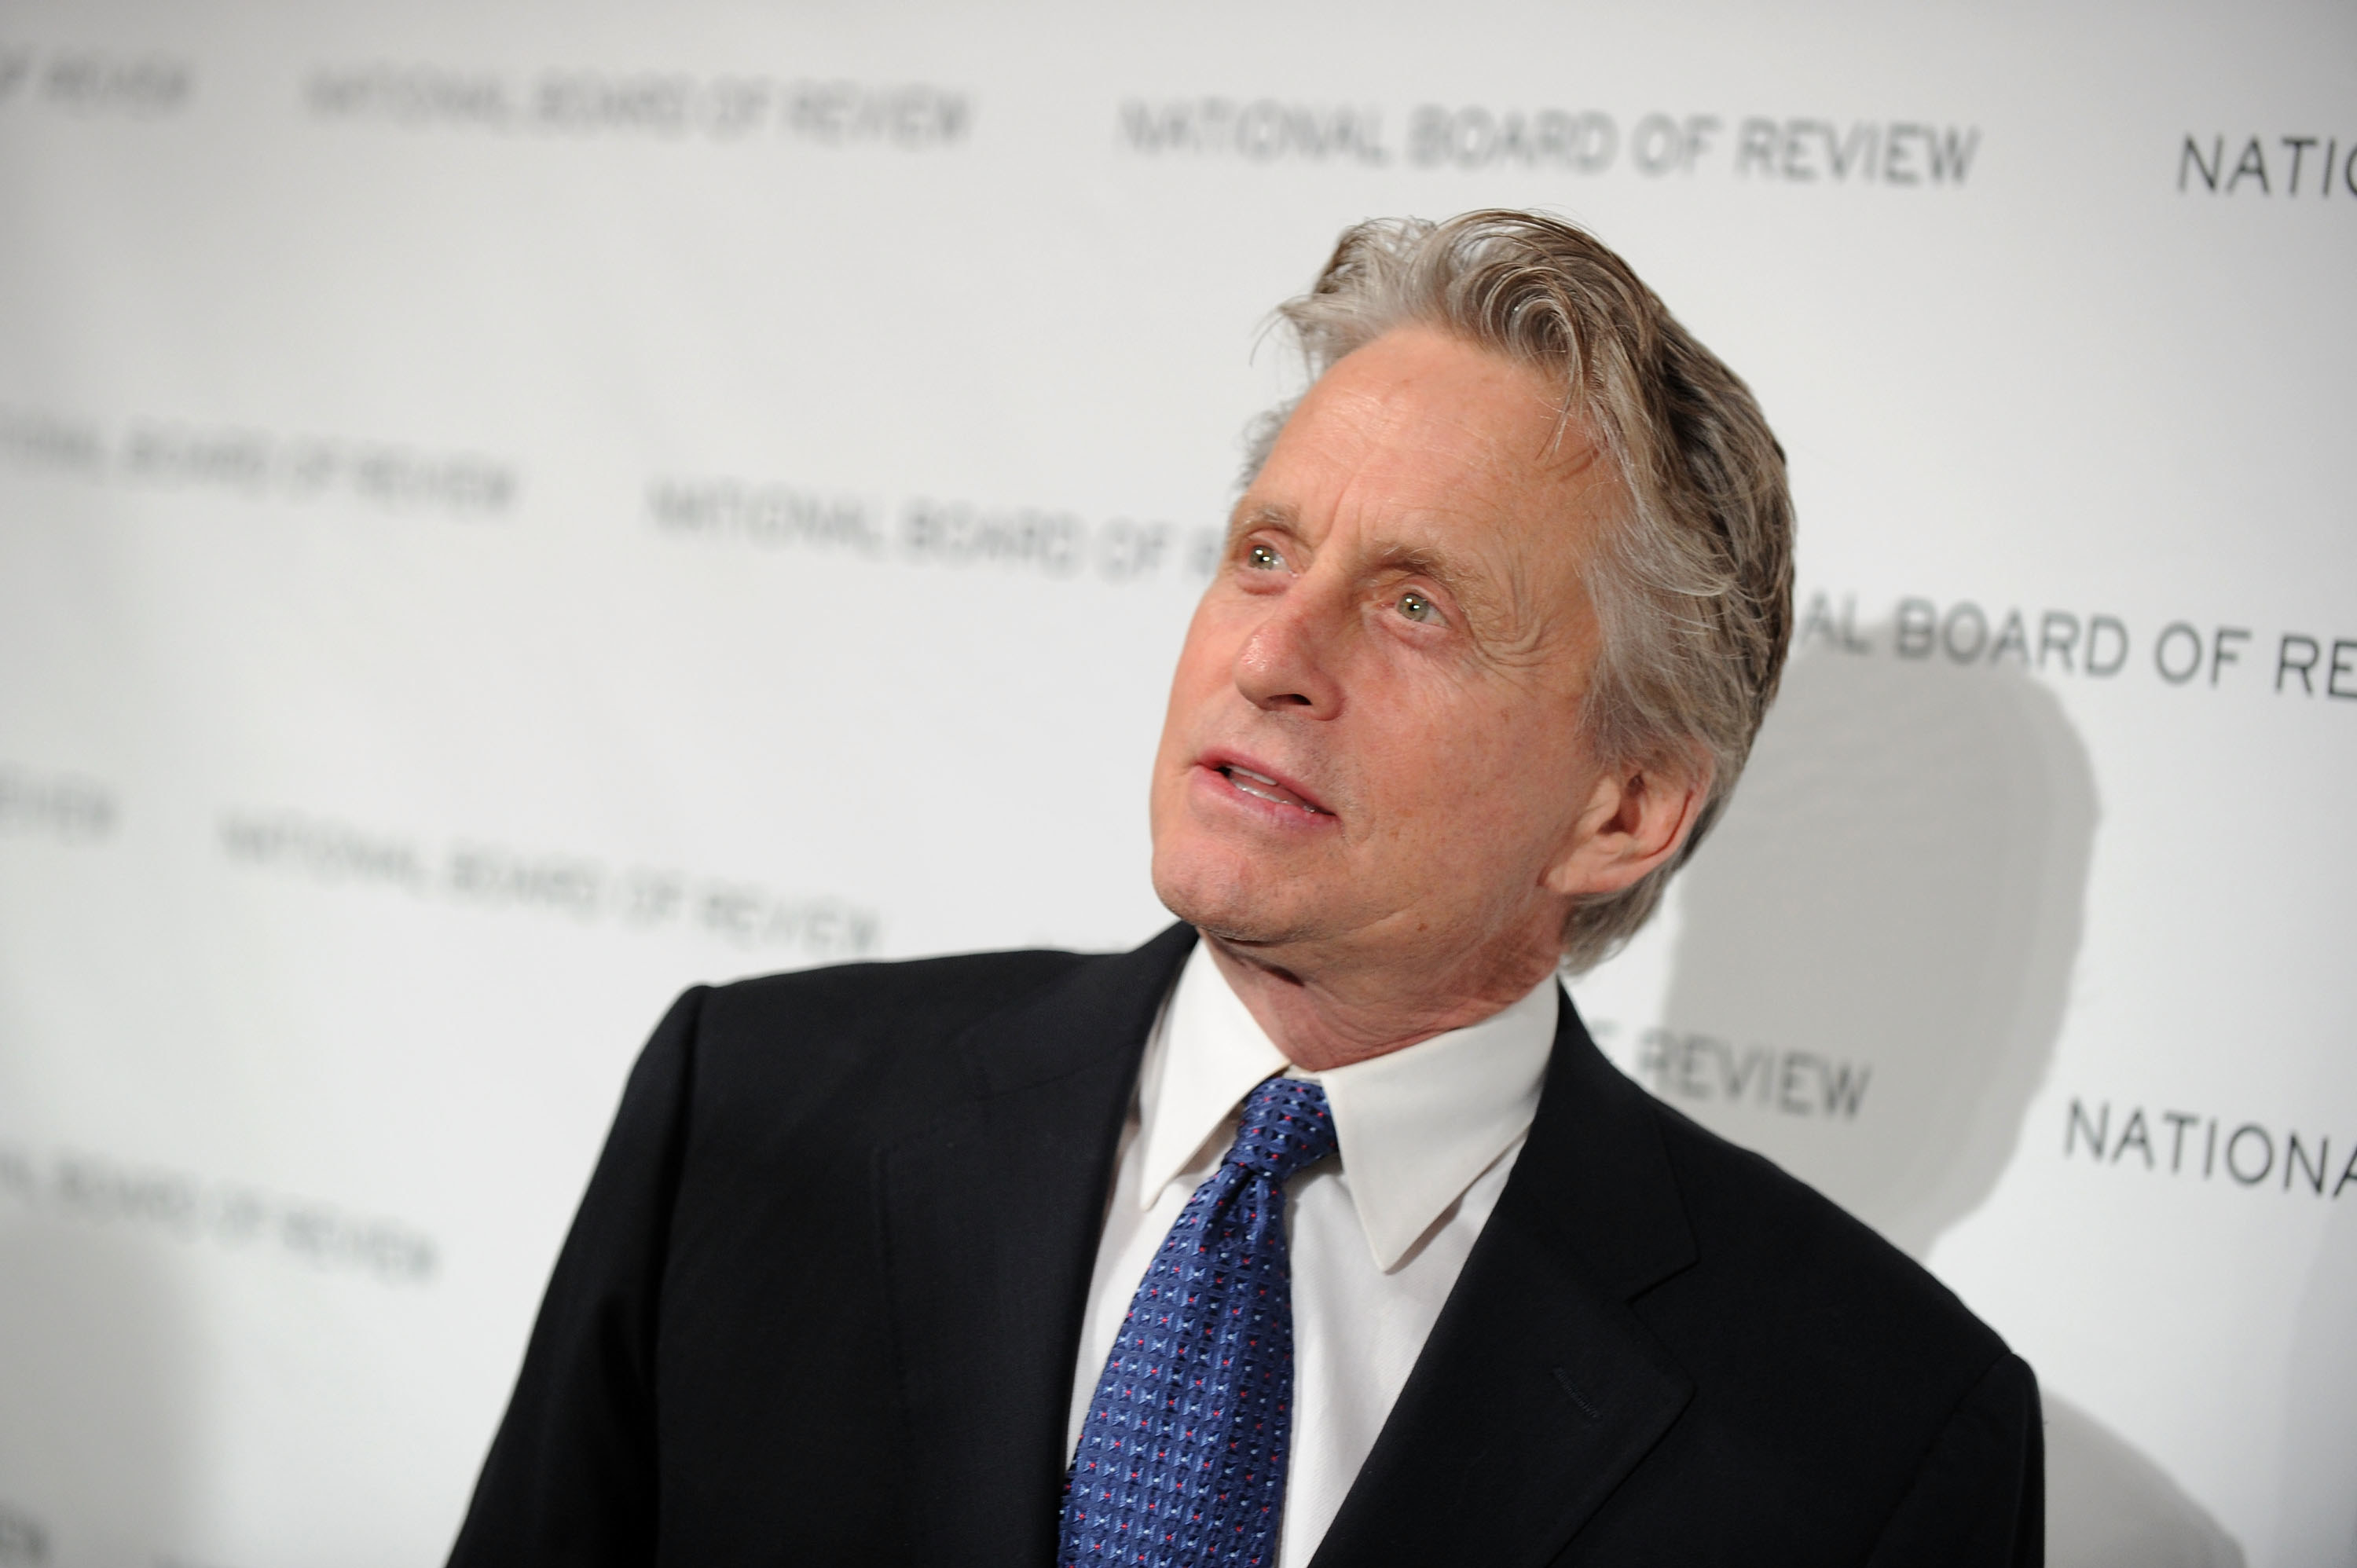 Michael Douglas attending the National Board of Review of Motion Pictures Awards gala in a black suit and blue tie in January 2010.